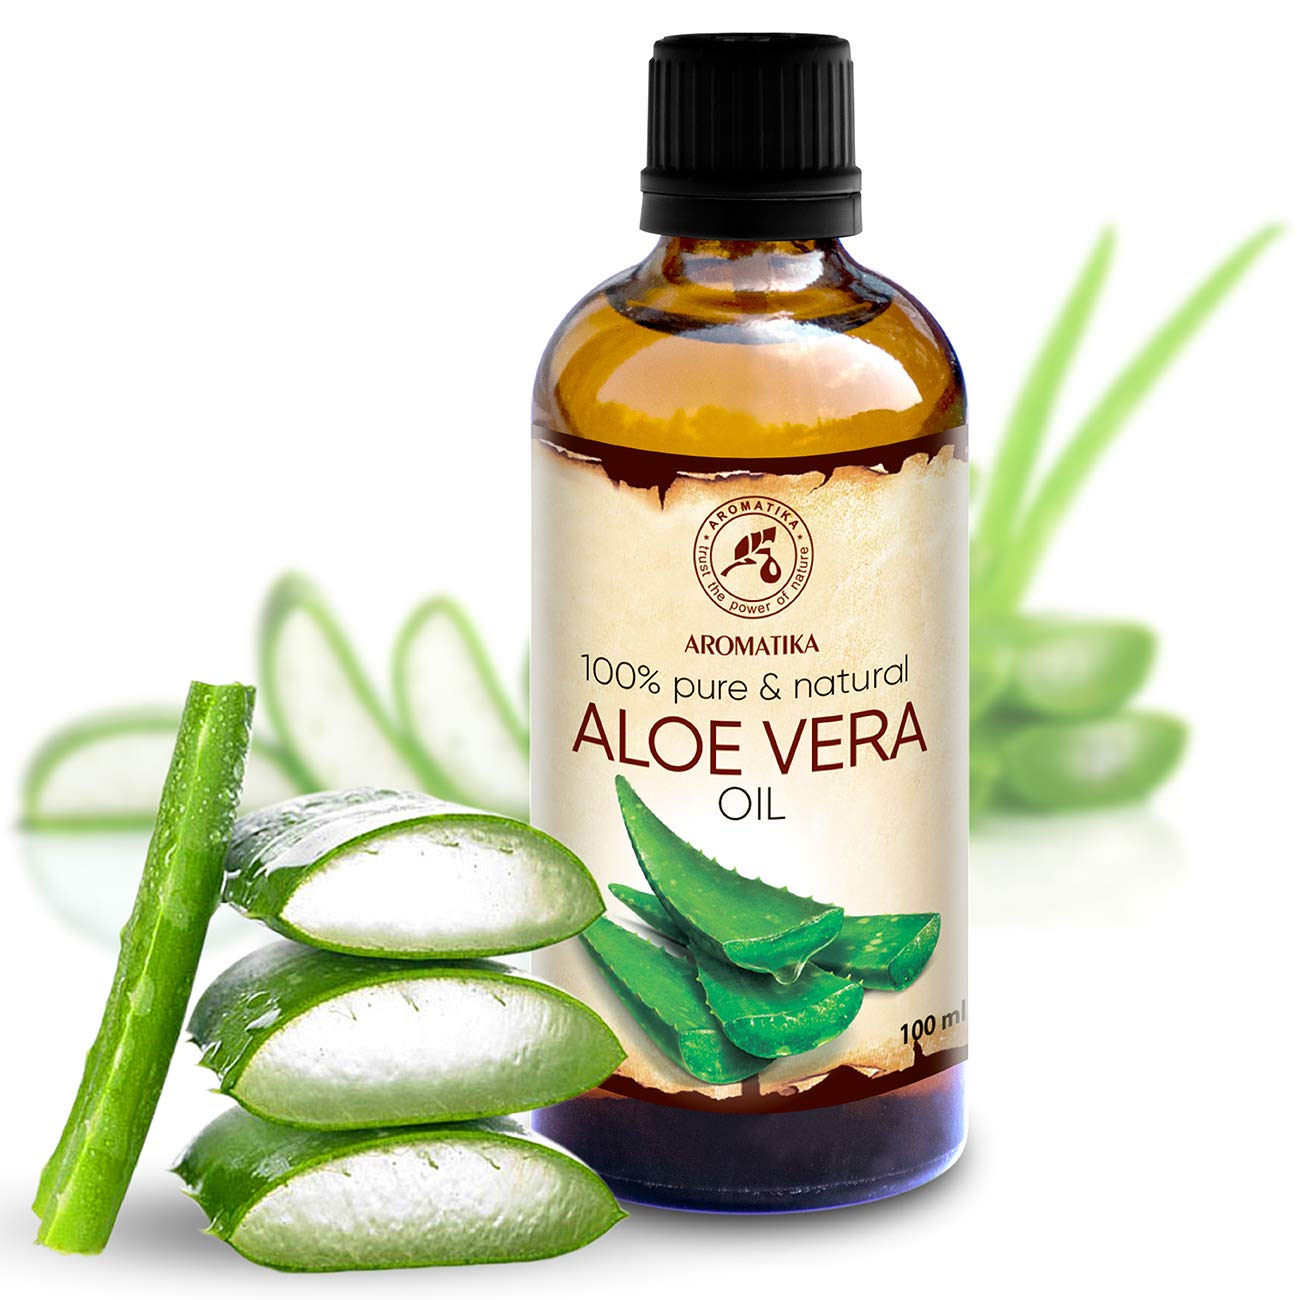 Aloe Vera Oil 3.4oz - Aloe Barbadensis - Brasil - 100% Pure & Best for Skin - Body - Hair Growth - Face Moisturizer - Baby Oils - Used for Massage - Relaxation - Bath - Aromatherapy - by Aromatika